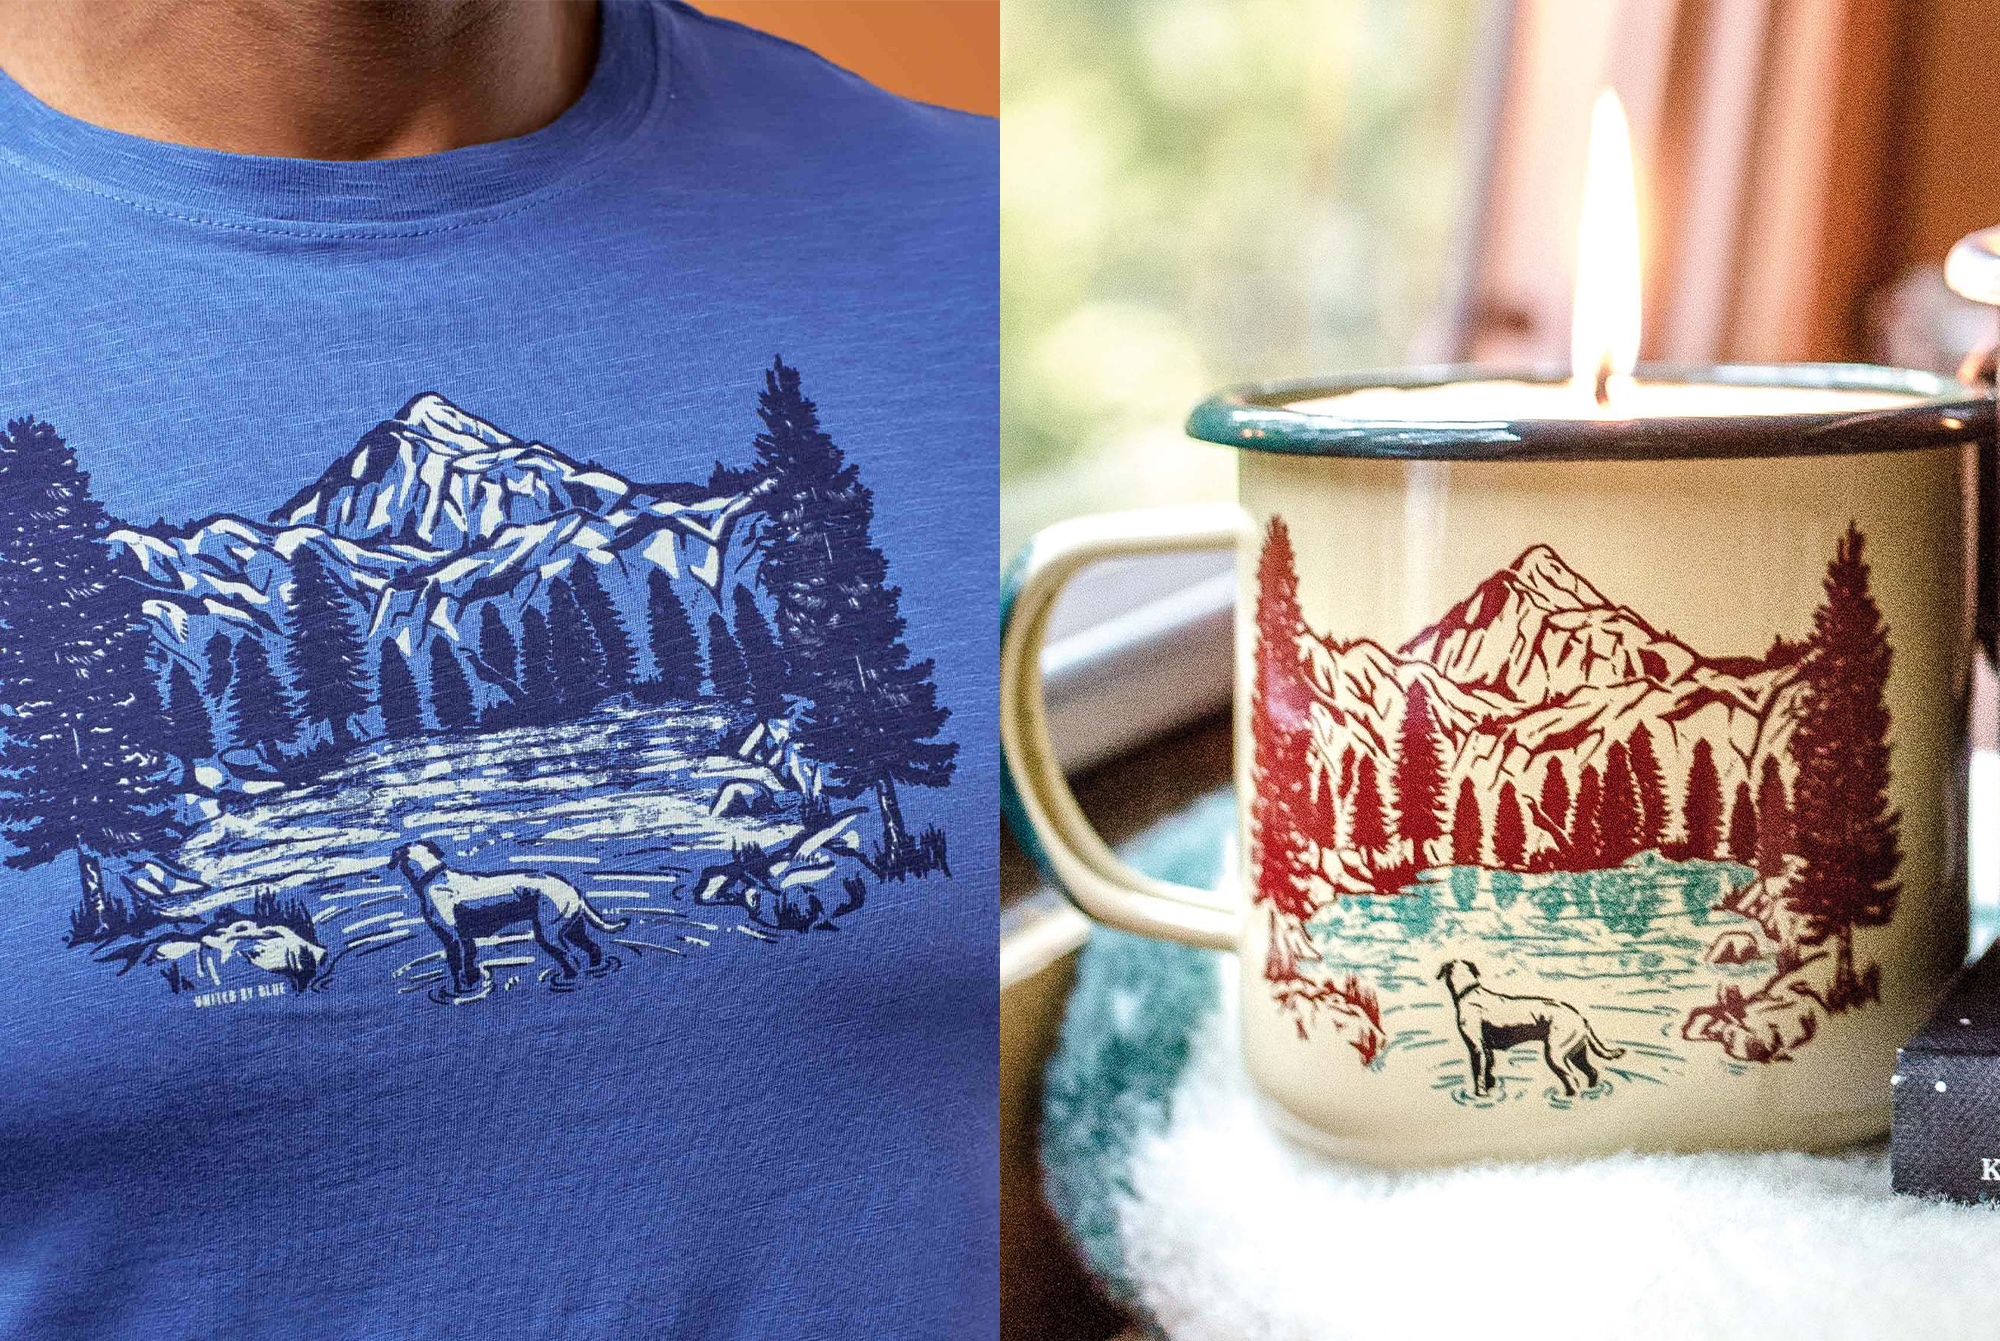 United By Blue Off-Leash Shirt and Candle